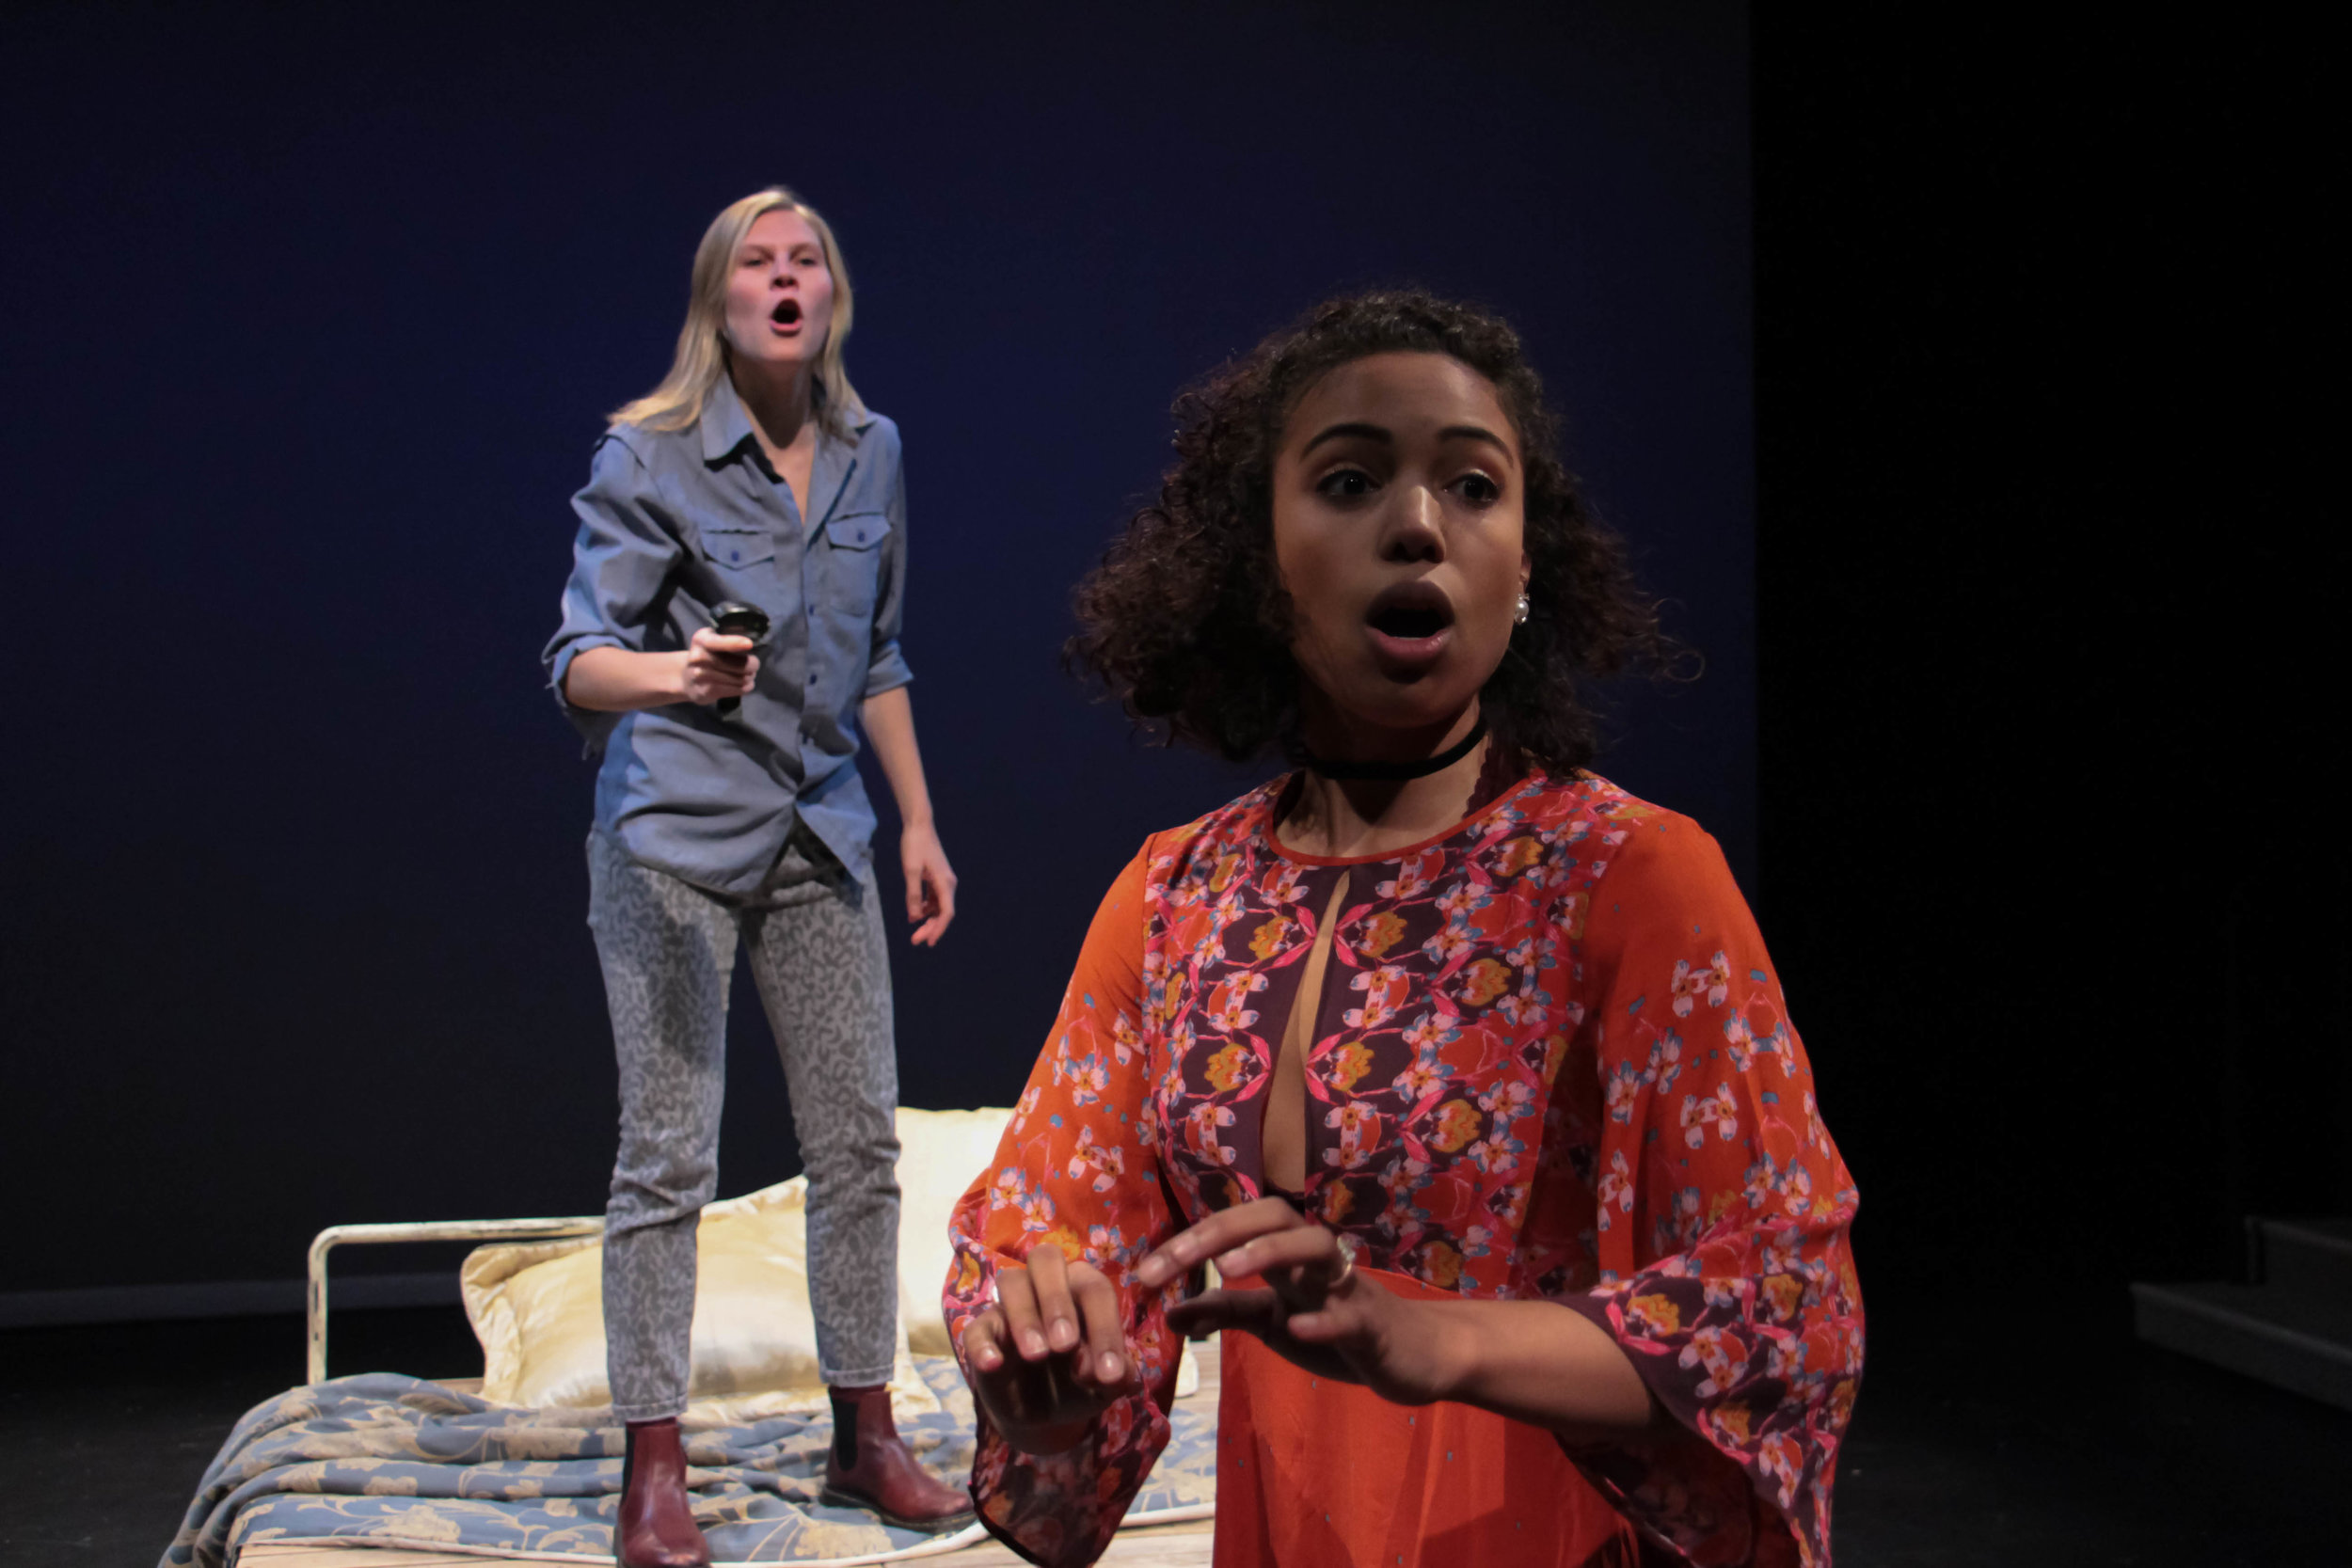 Anna Crivelli And Courtney Jamison In BLUEBEARD'S WIFE, 2016